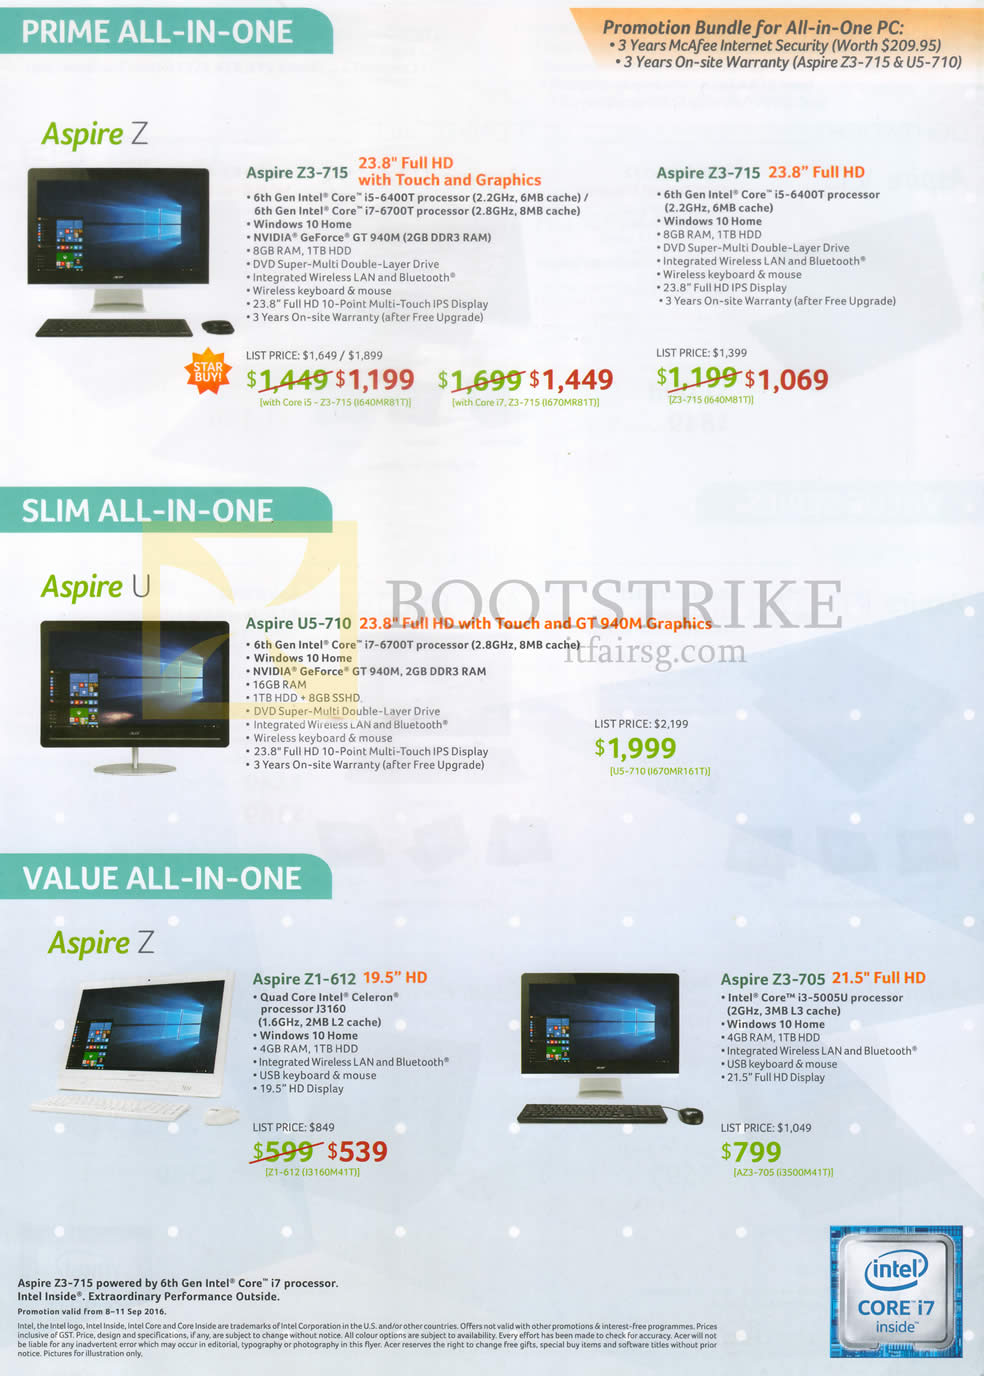 COMEX 2016 price list image brochure of Acer AIO Desktop PCs Aspire Z Prime Z3-715, Slim U5-710, Z1-612, Z3-705